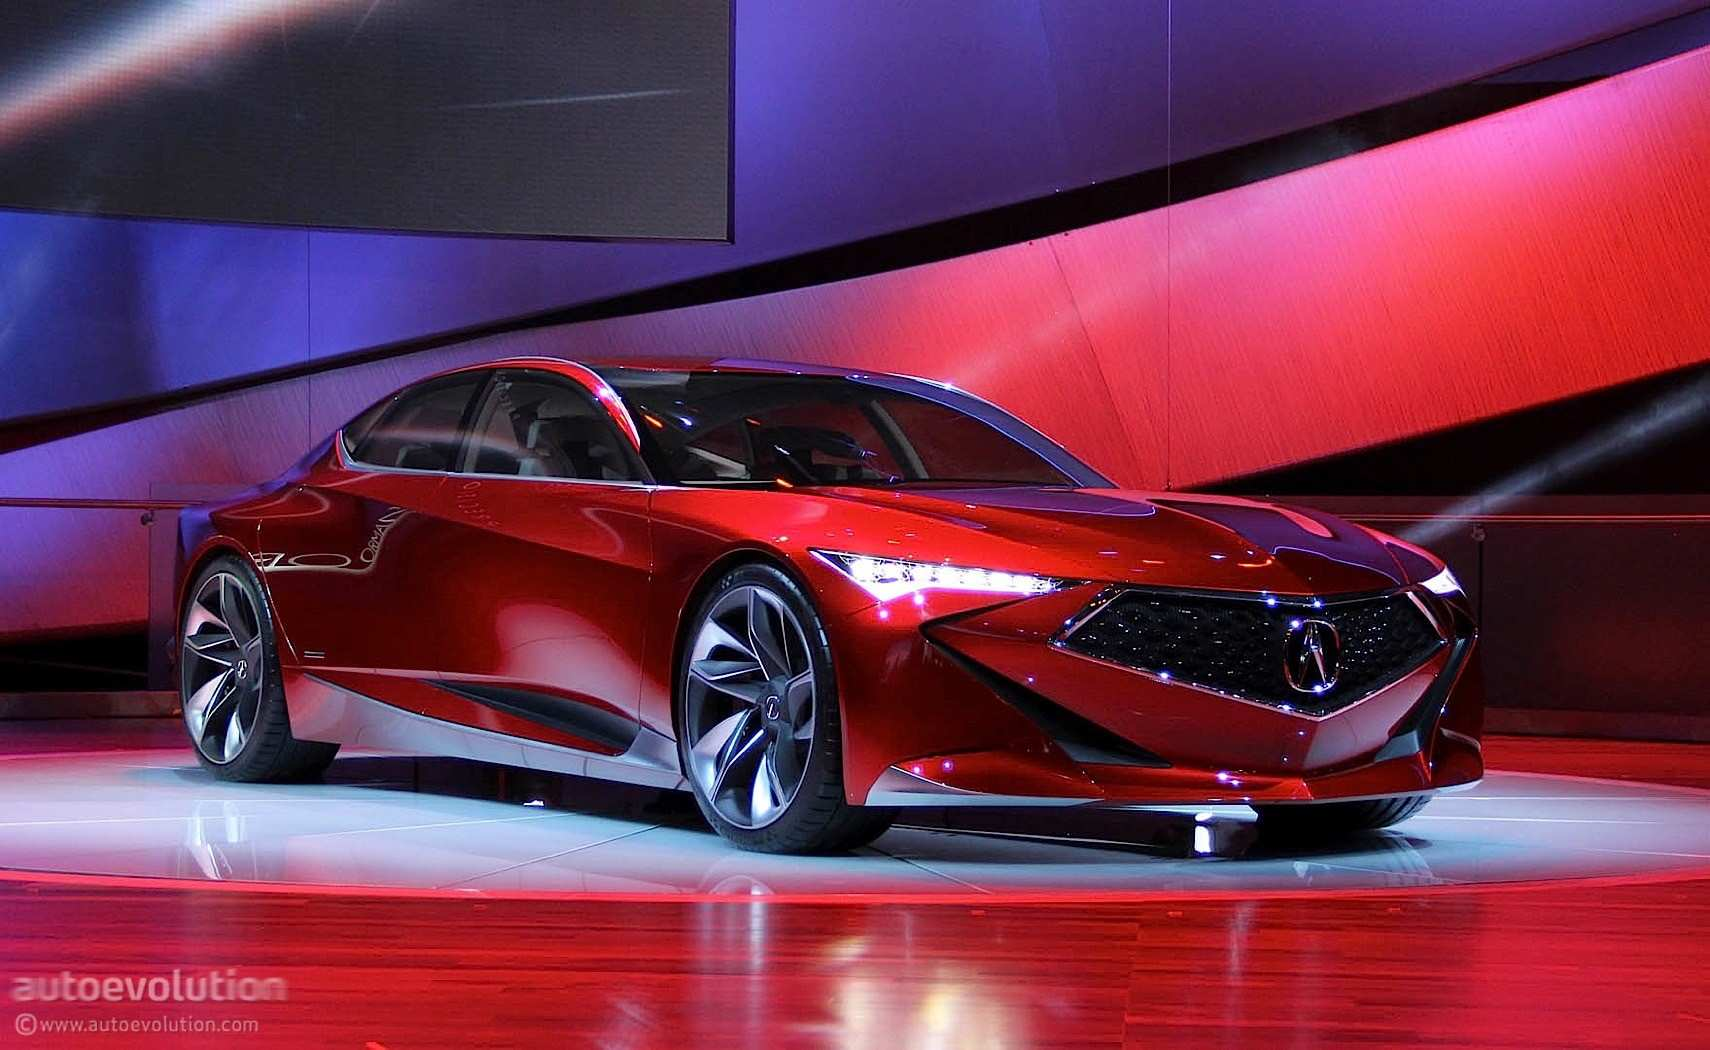 87 Gallery of 2020 Acura RLX New Concept by 2020 Acura RLX